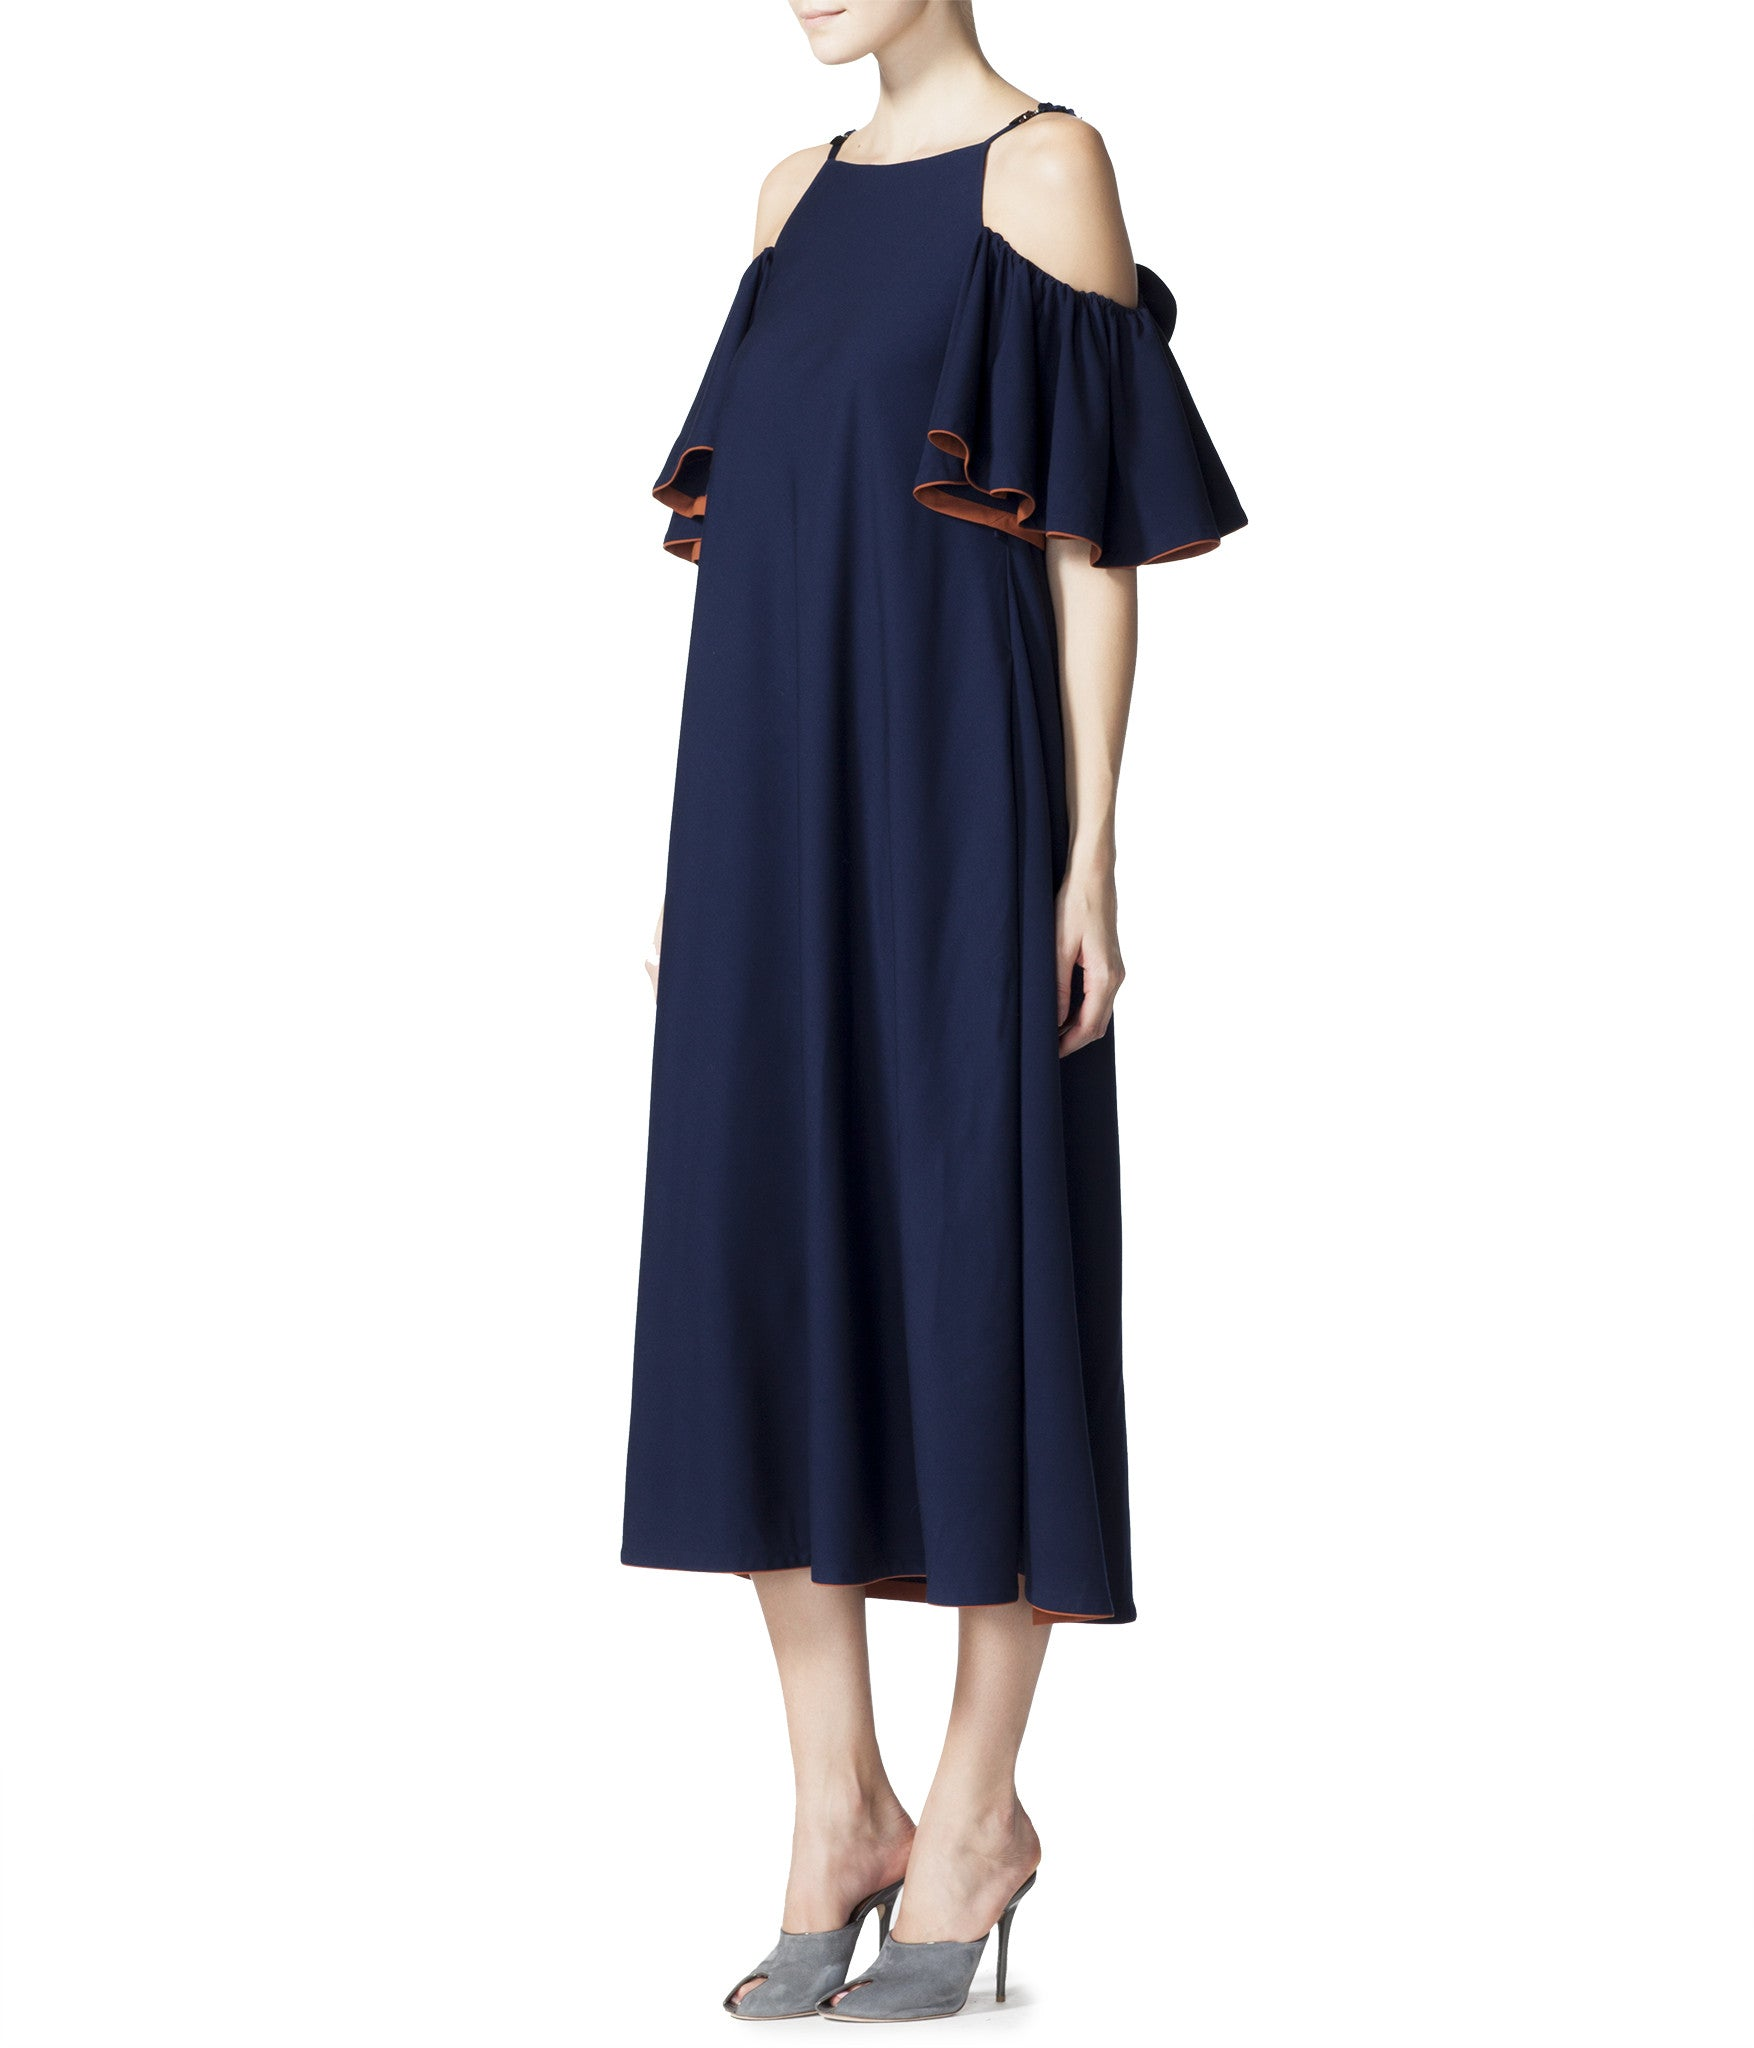 Midi Dress With Flared Sleeves